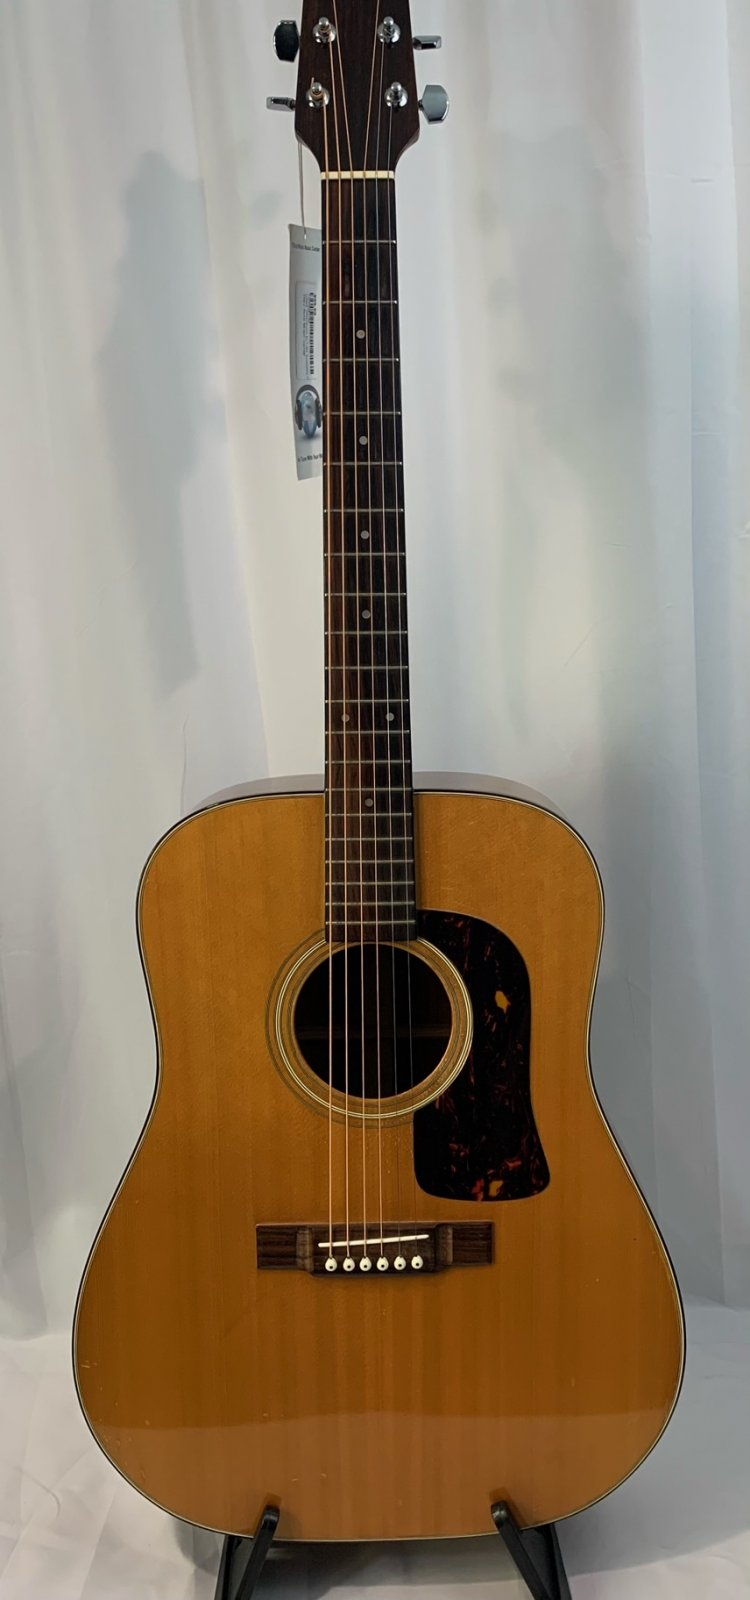 Used Washburn D-15N Acoustic Guitar with Bag